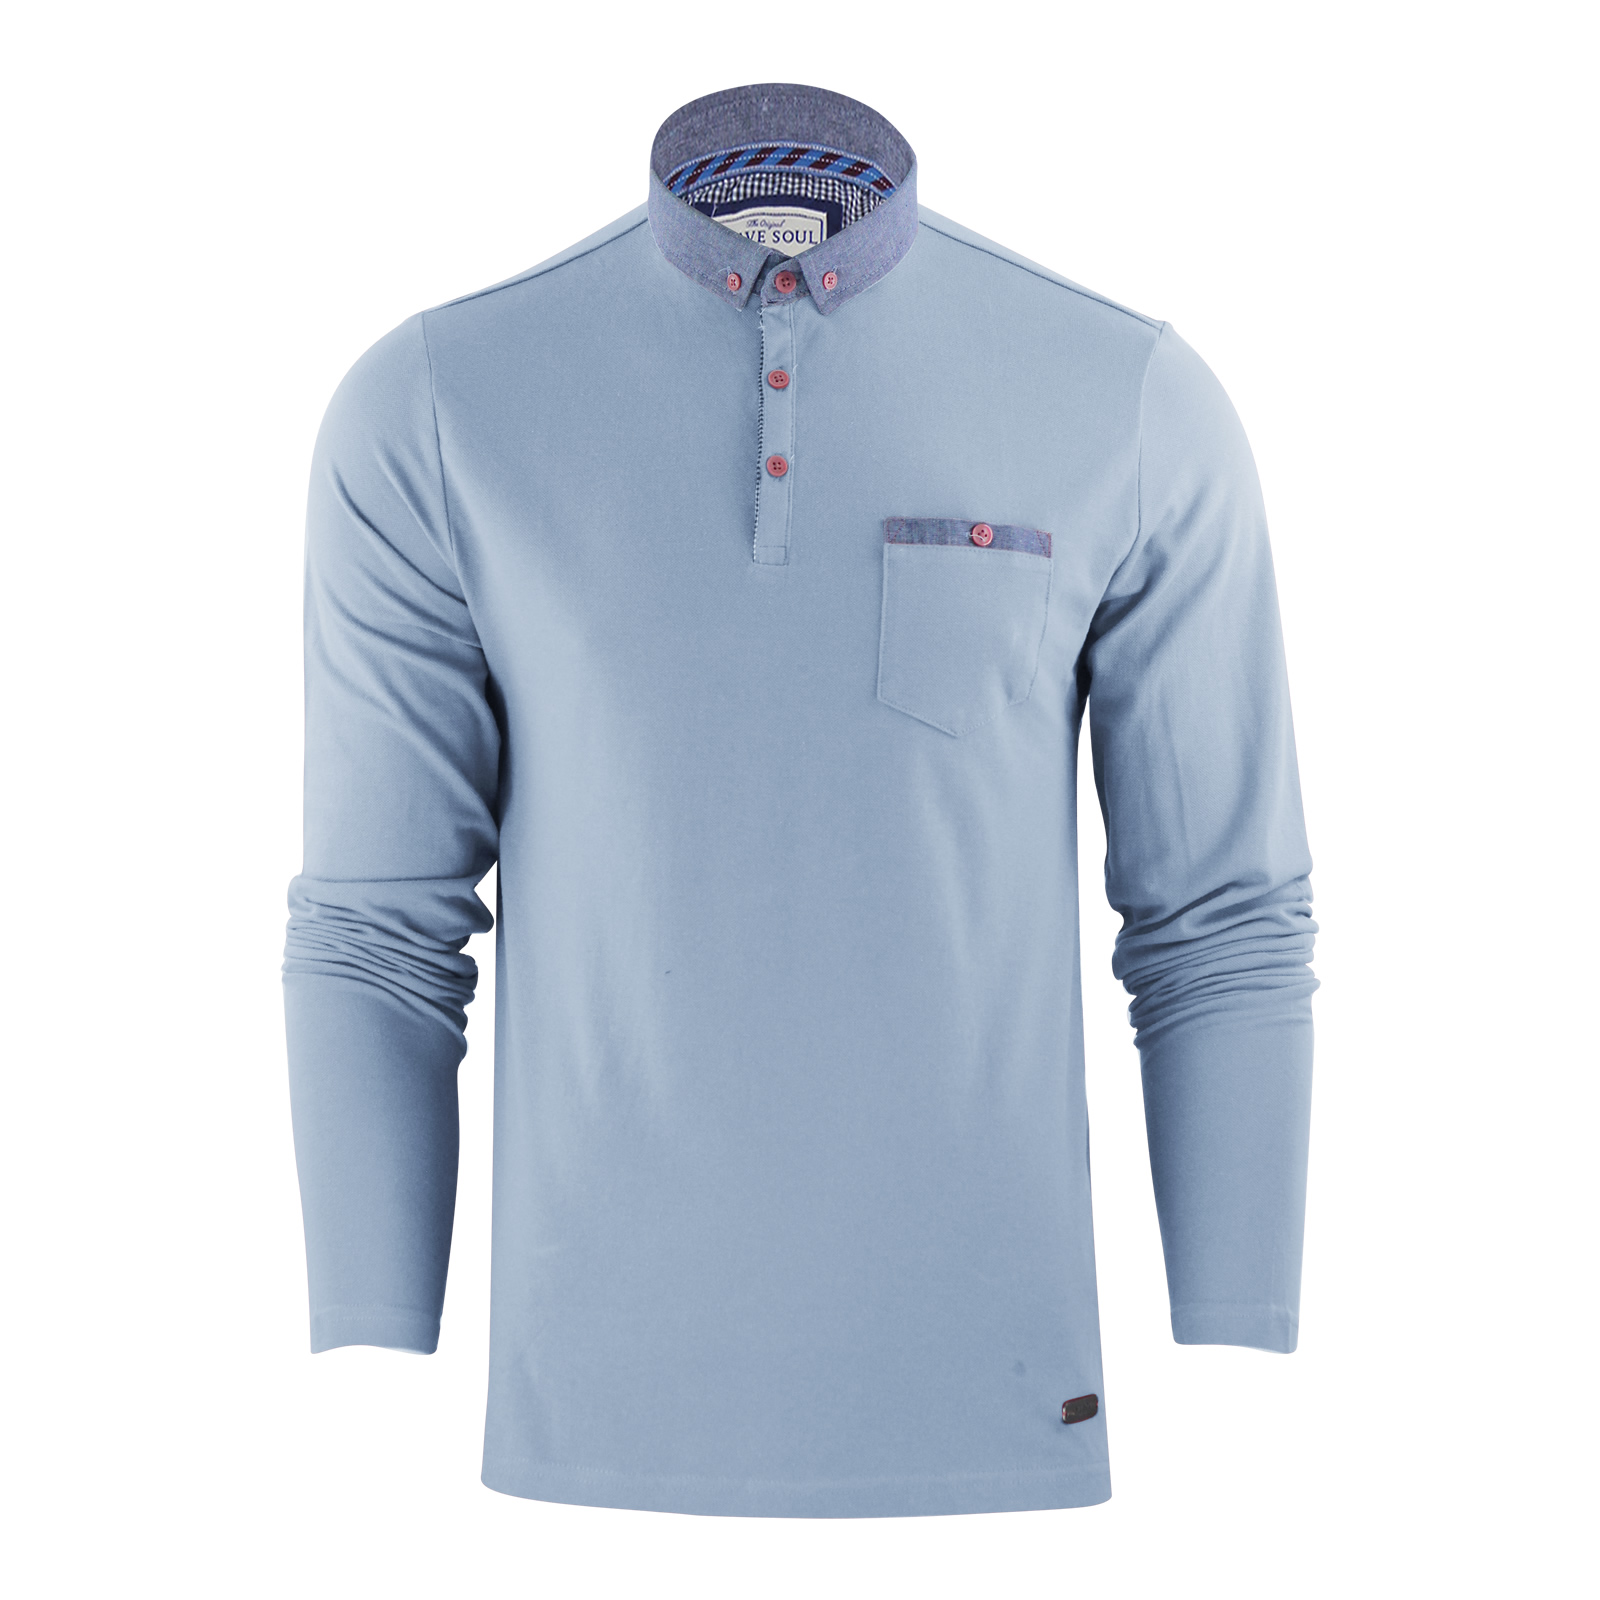 Sentinel Mens Brave Soul Hera Cotton Polo T Shirt Long Sleeve Pique Casual  Golf Top